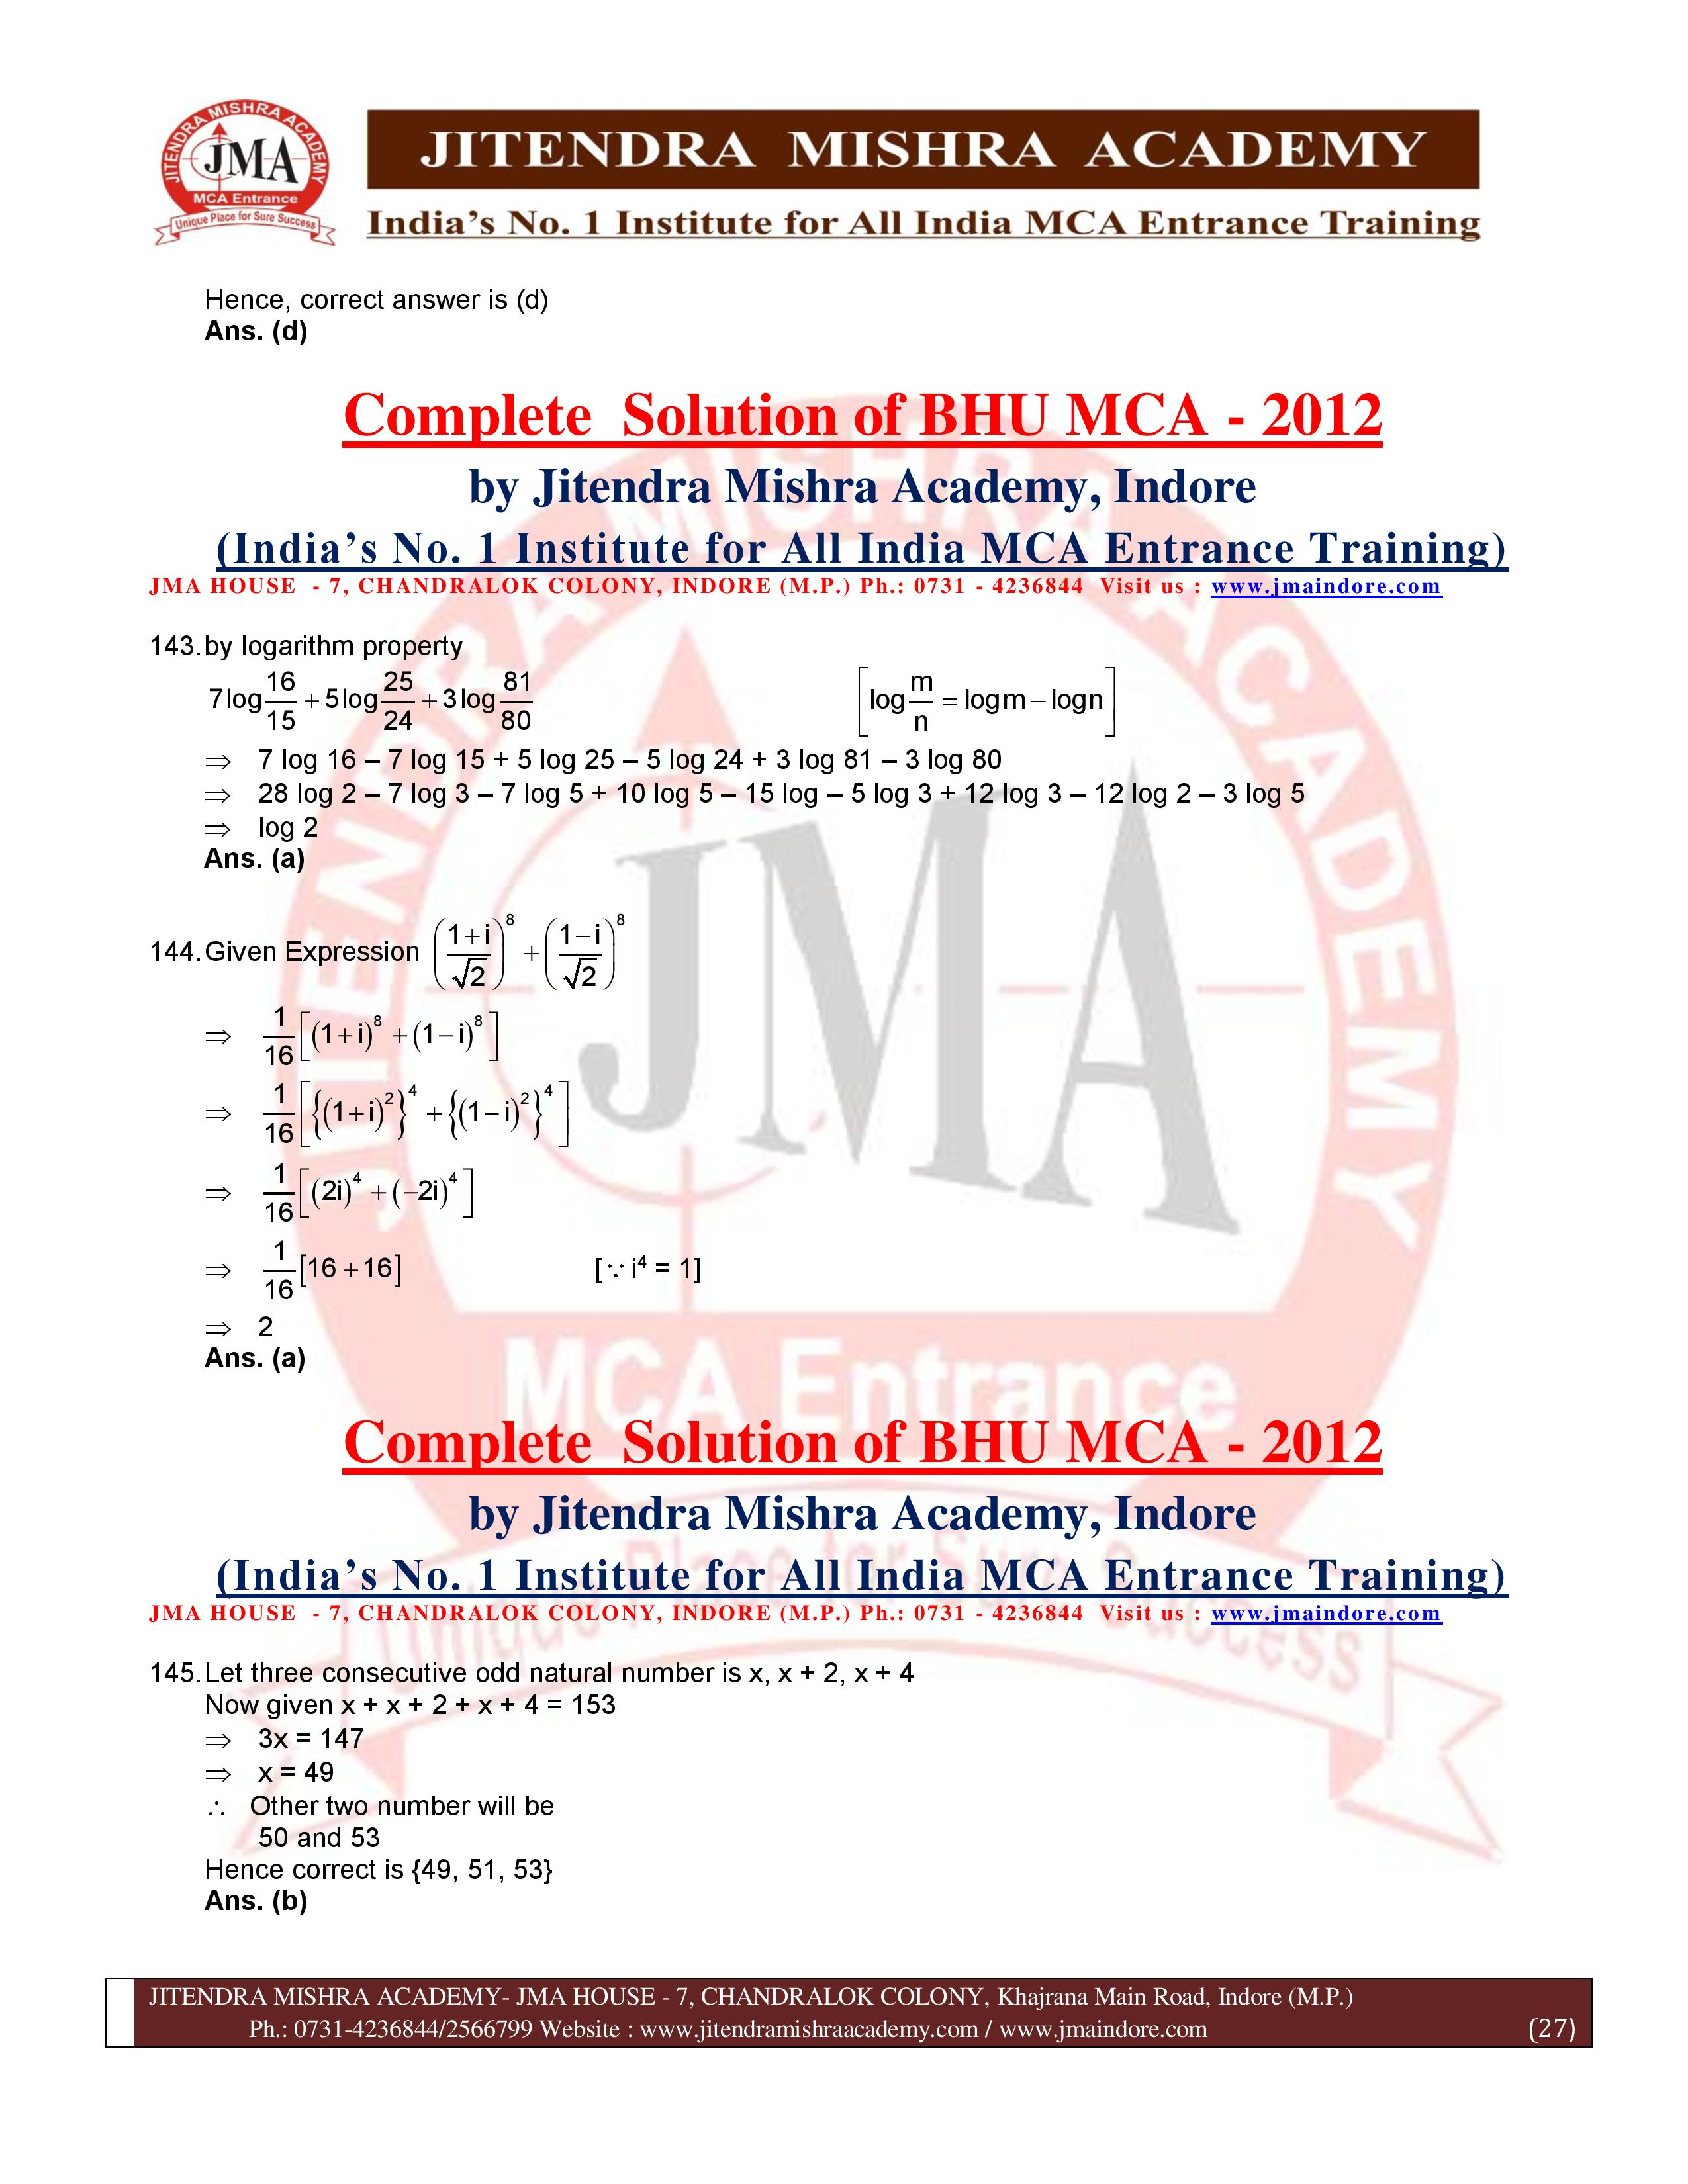 BHU 2012 SOLUTION (SET - 2) (07.07.16)-page-027